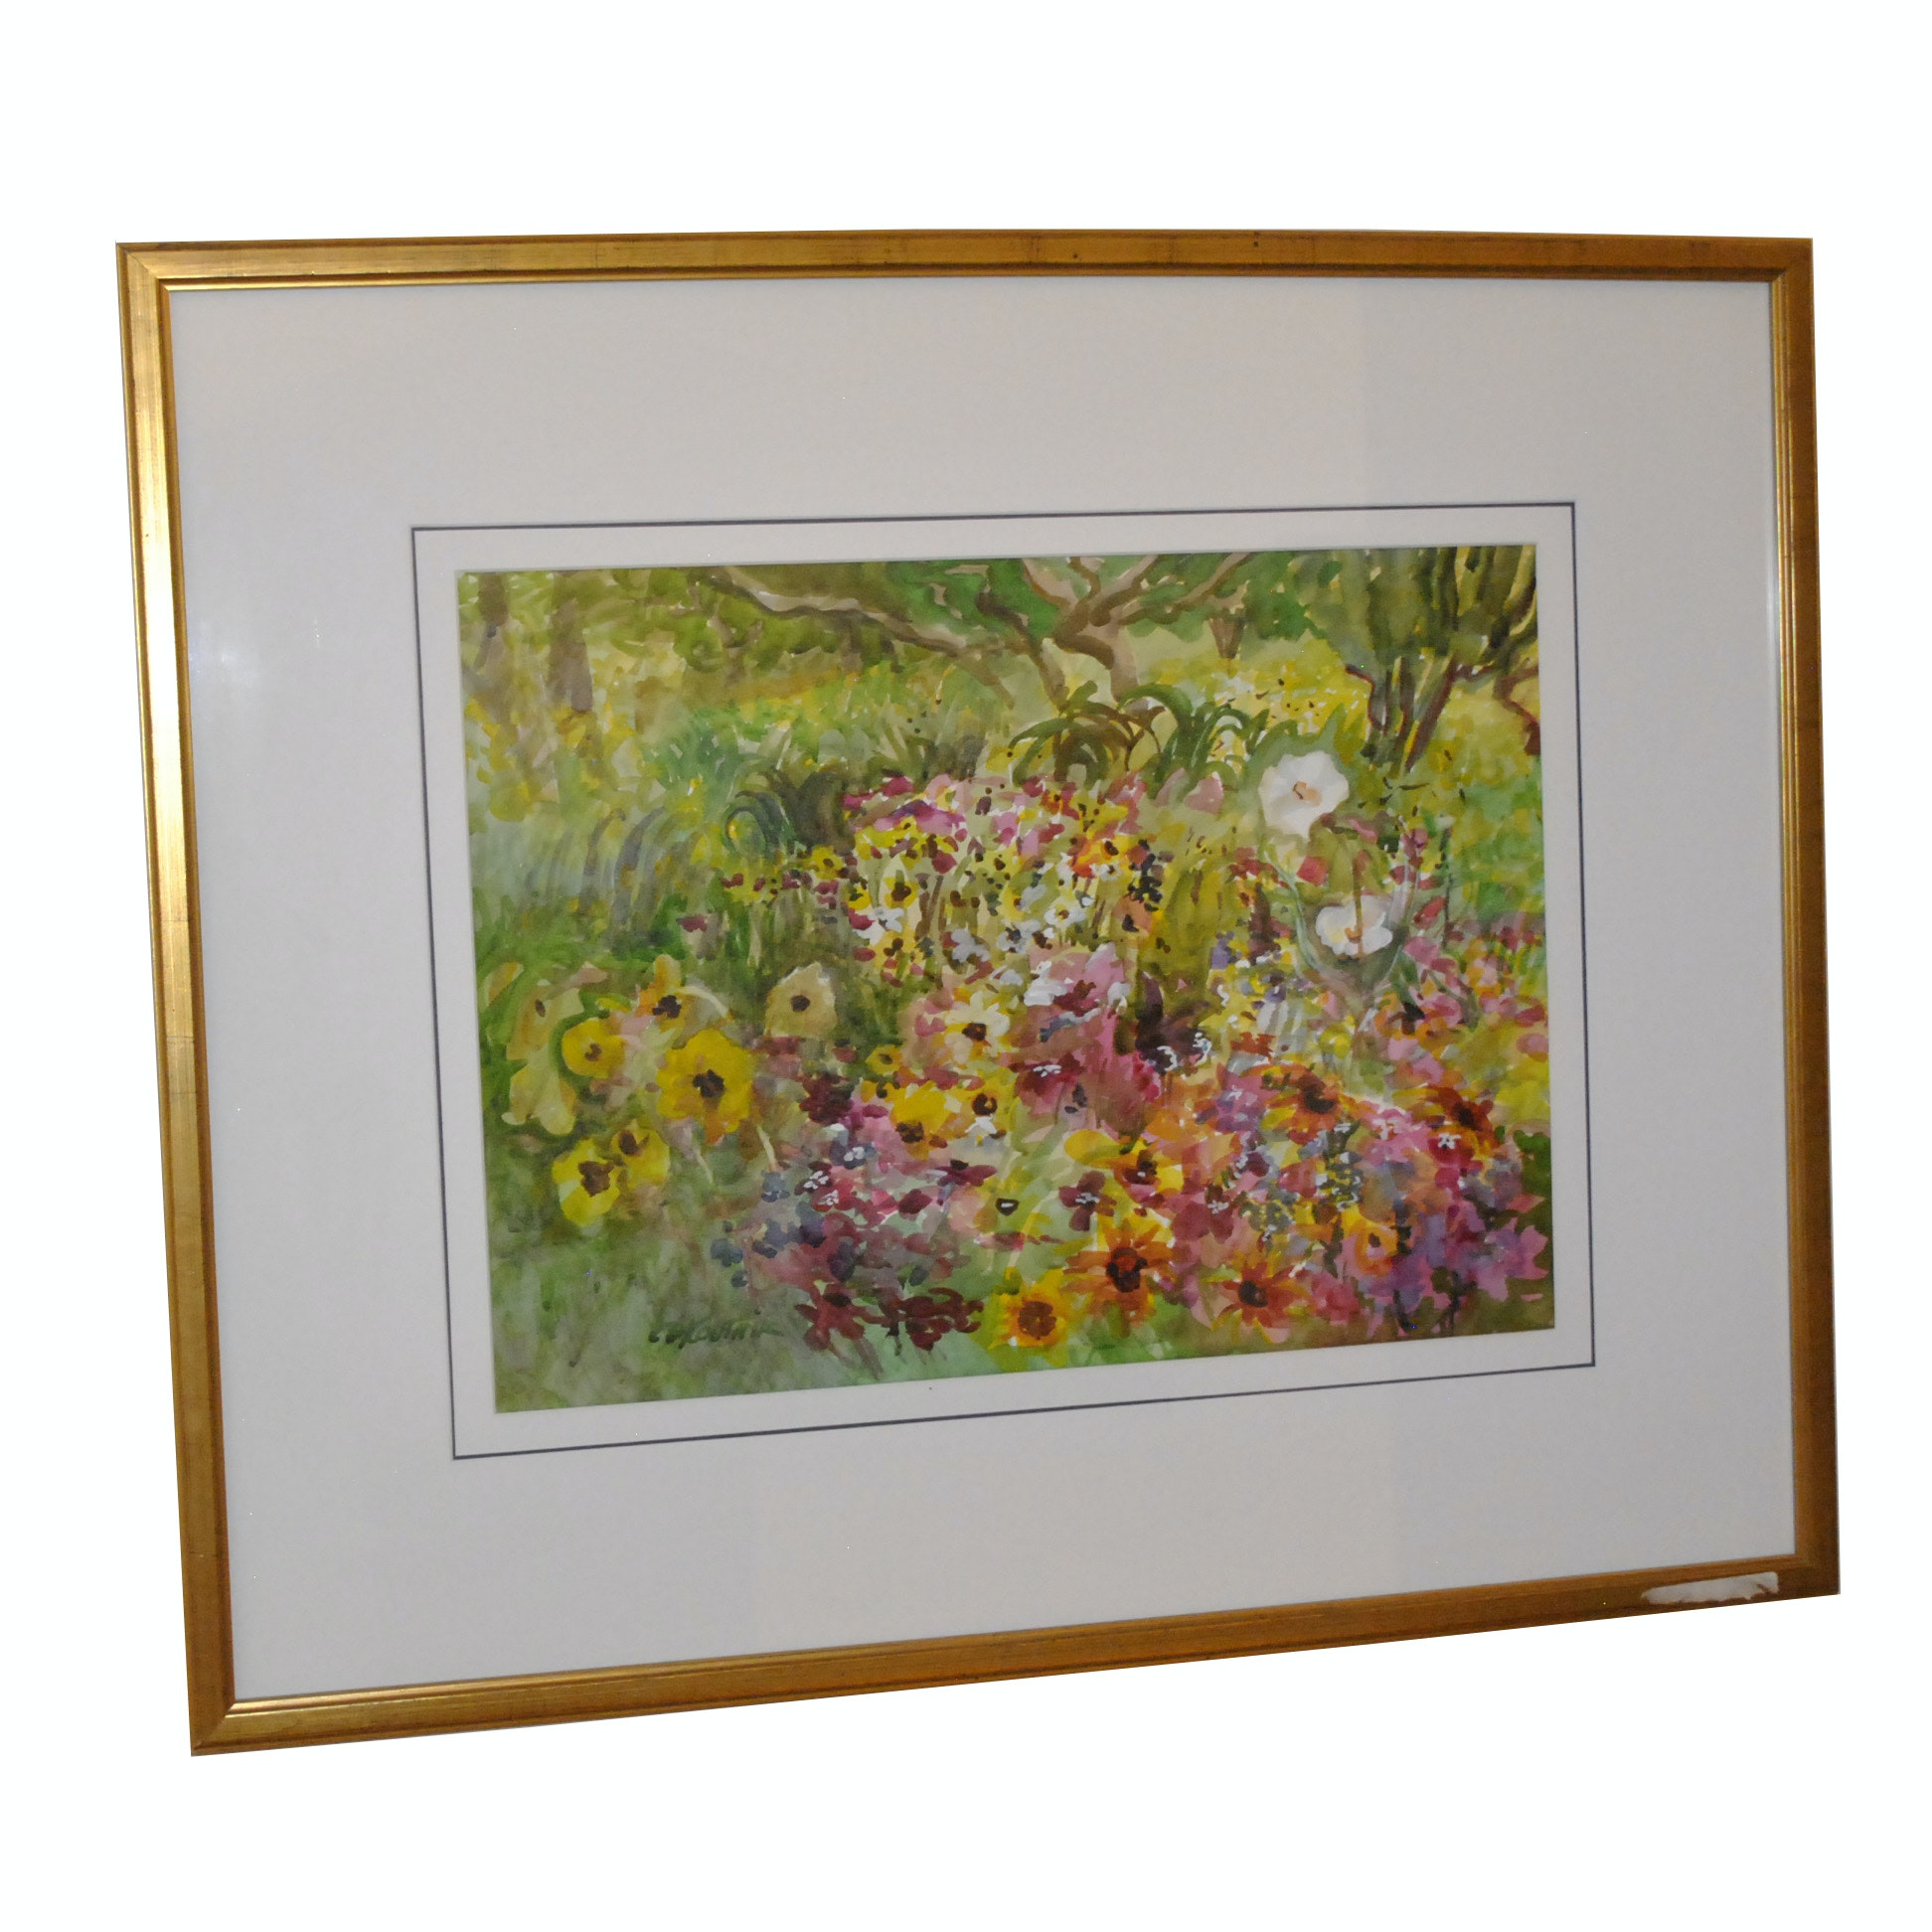 C. D. Koutnik Floral Watercolor Painting